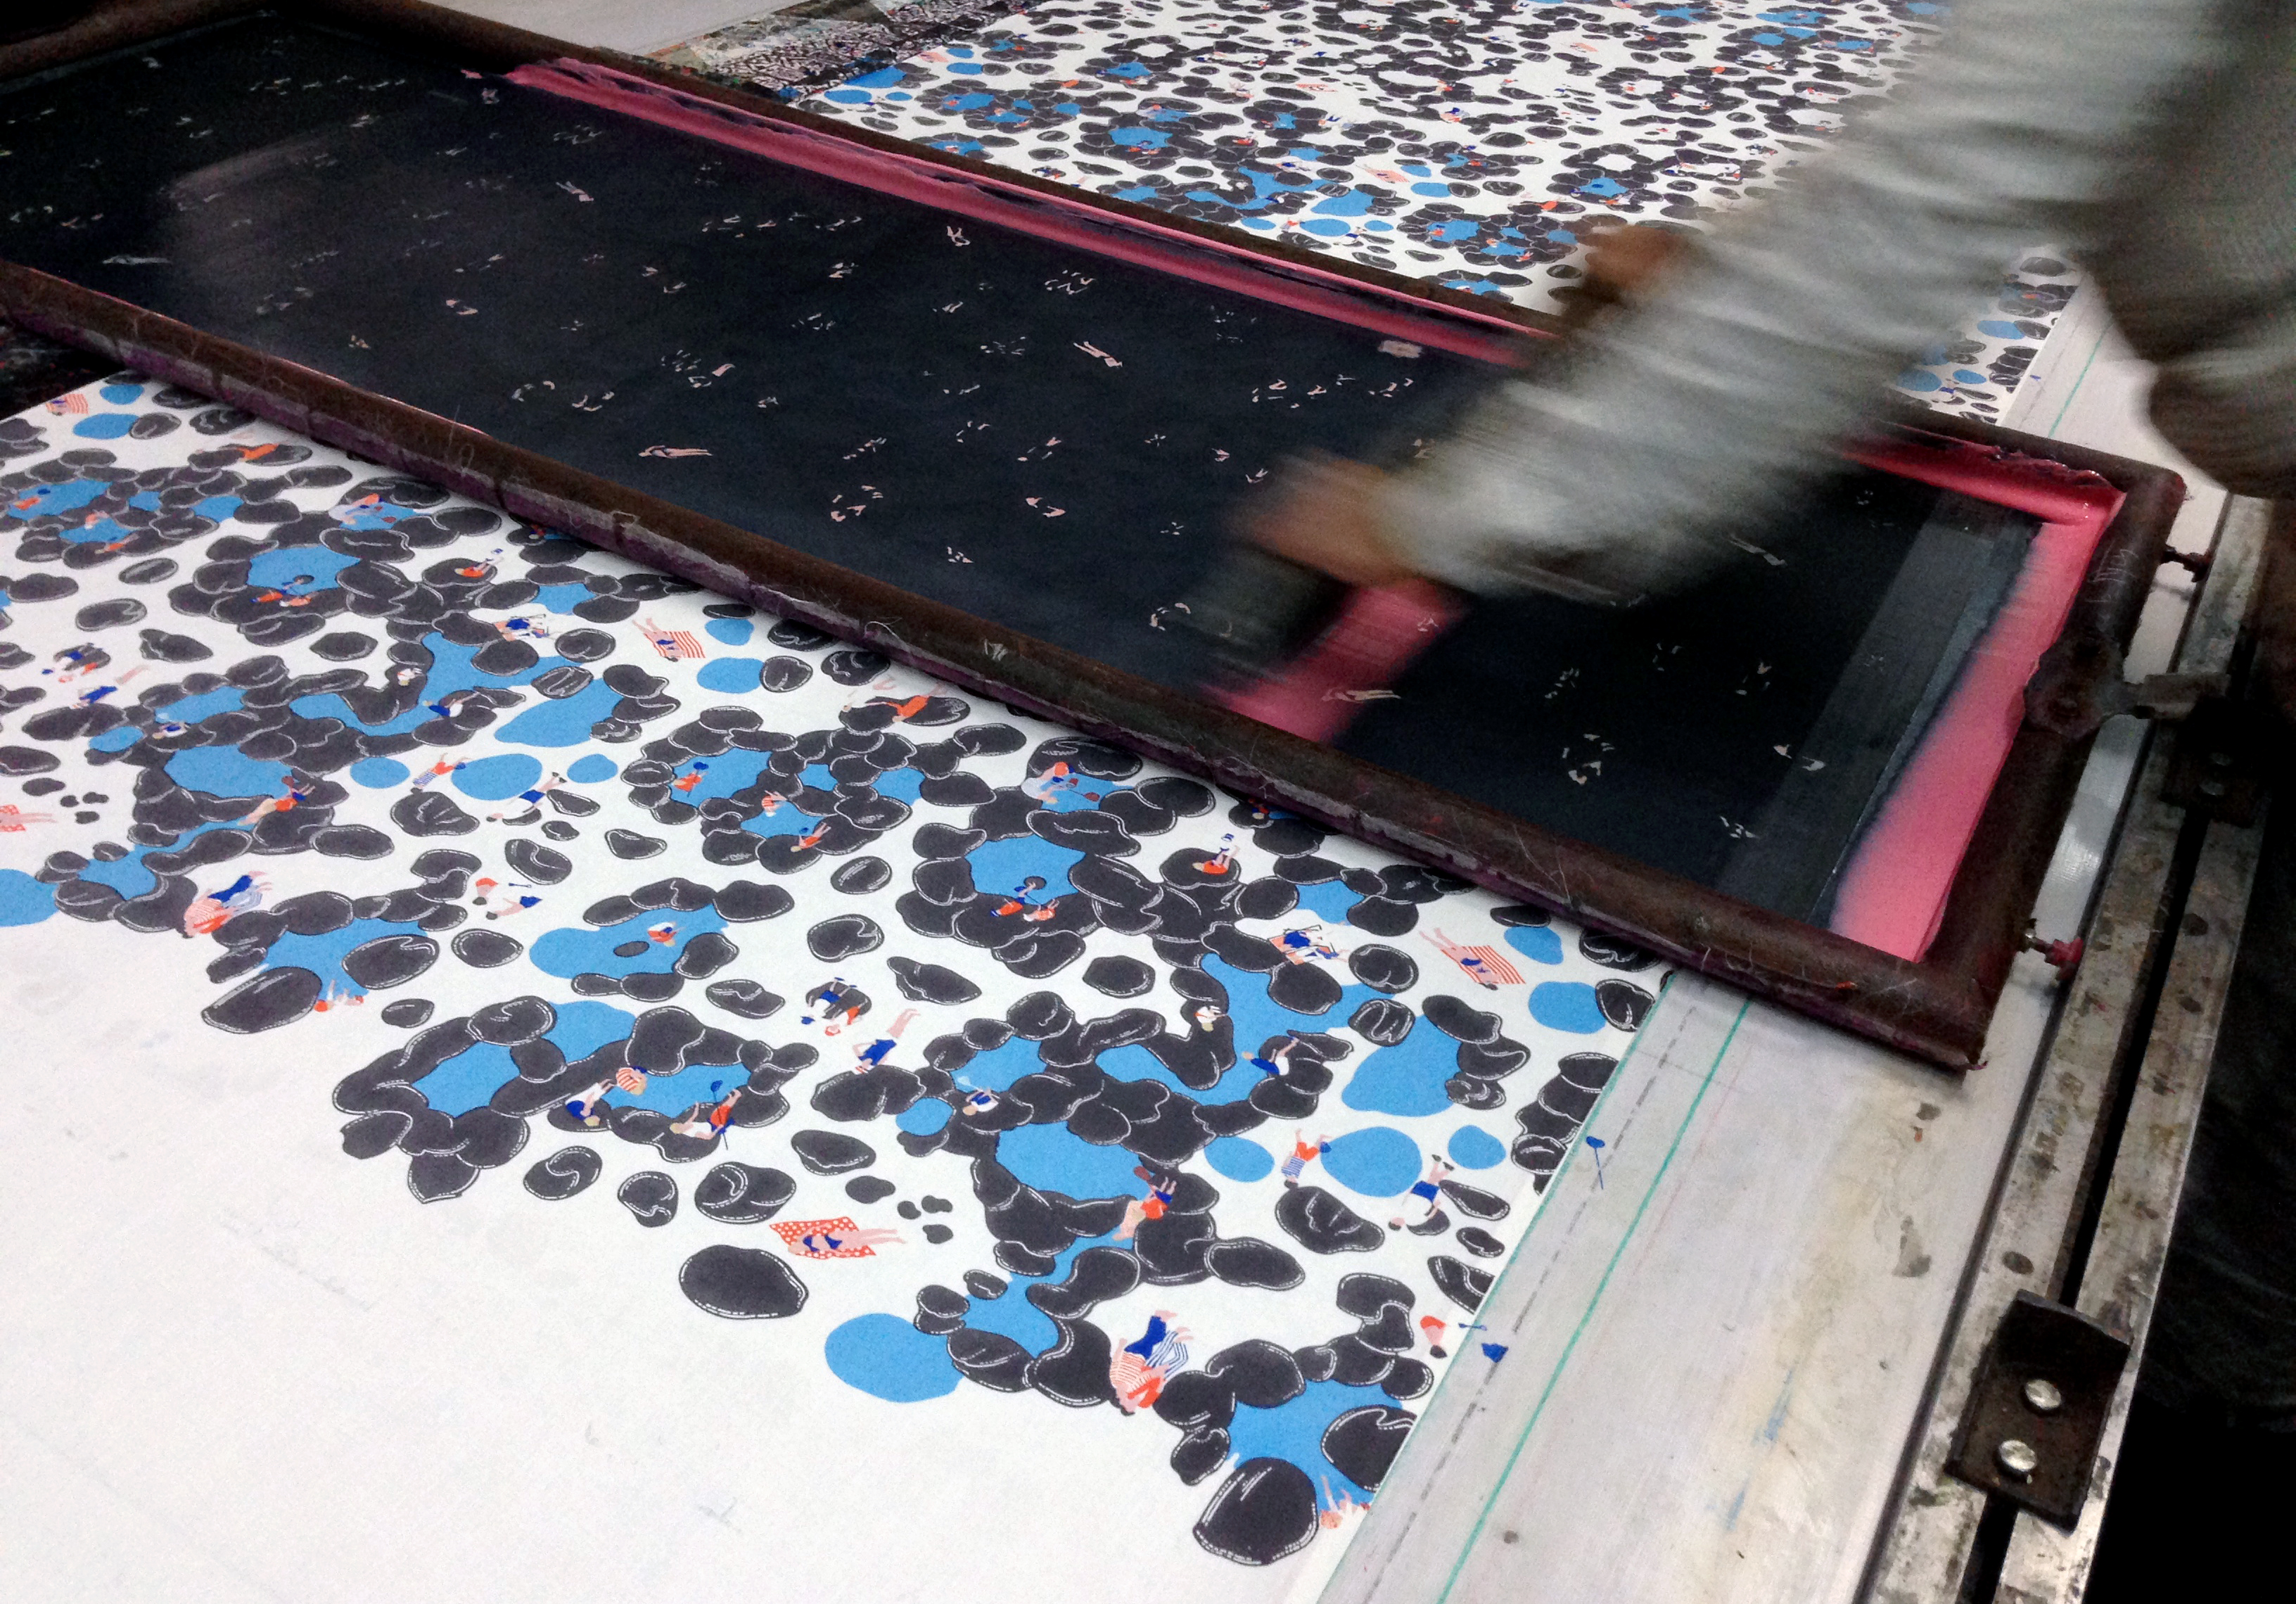 Salcombe Collection Rockpool Printing - Image courtesy of Safomasi